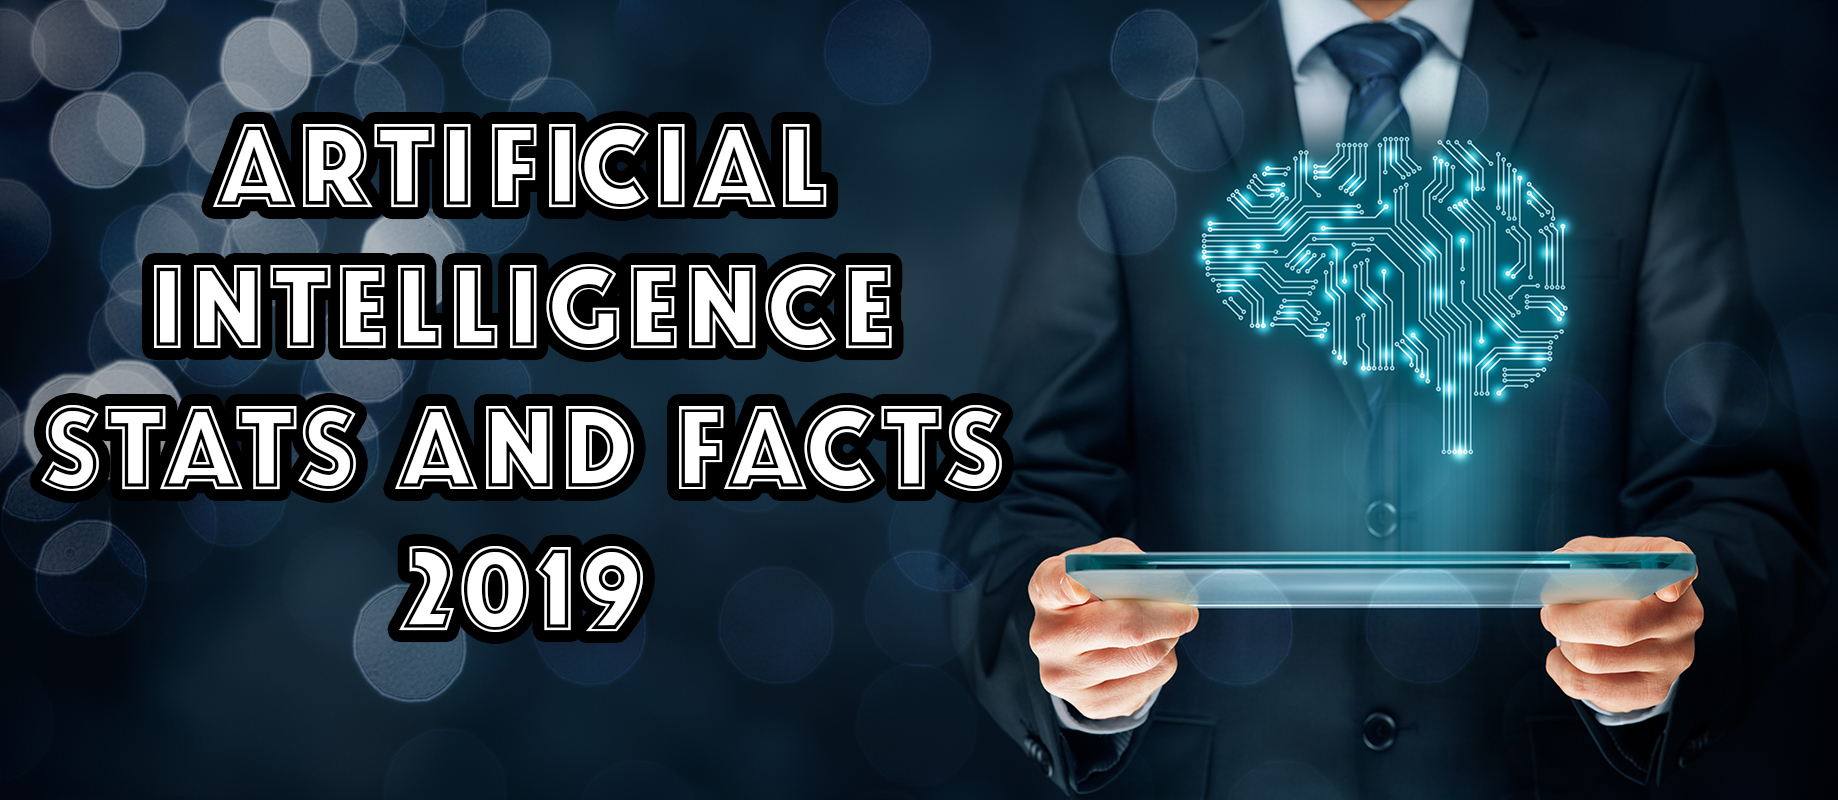 Artificial intelligence (AI) facts and stats 2019